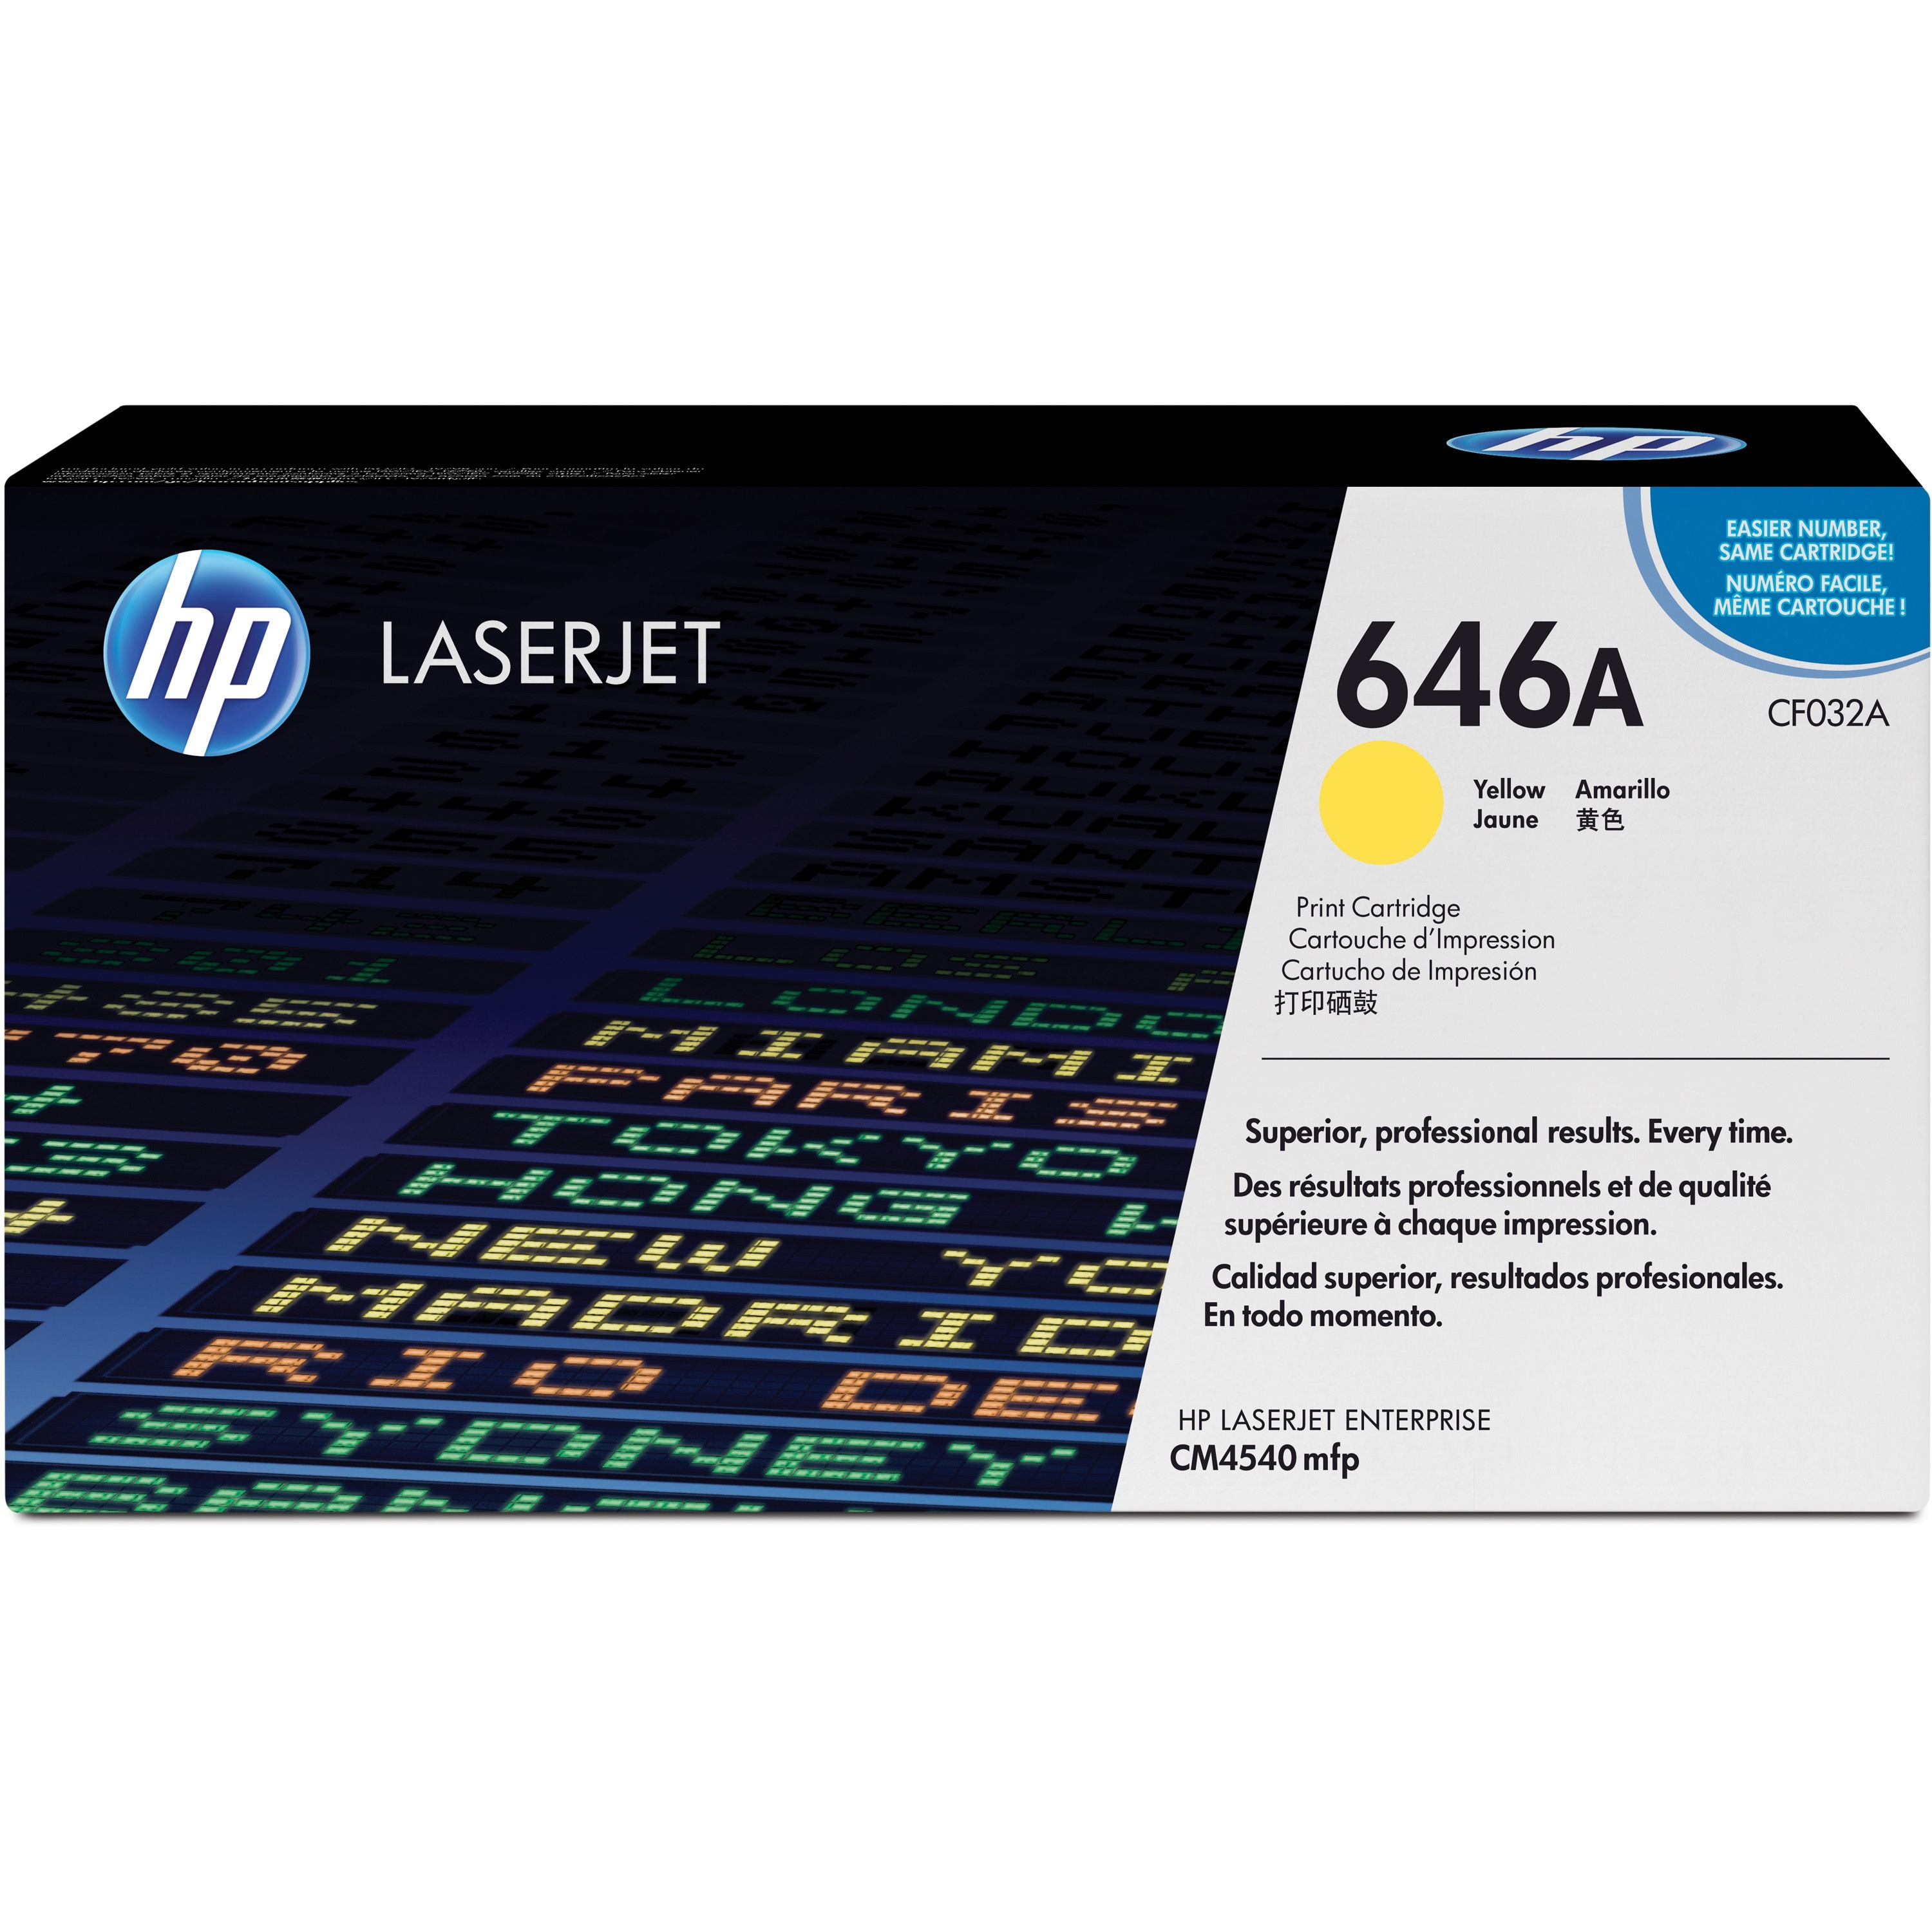 HP 646A Toner Cartridge - Yellow